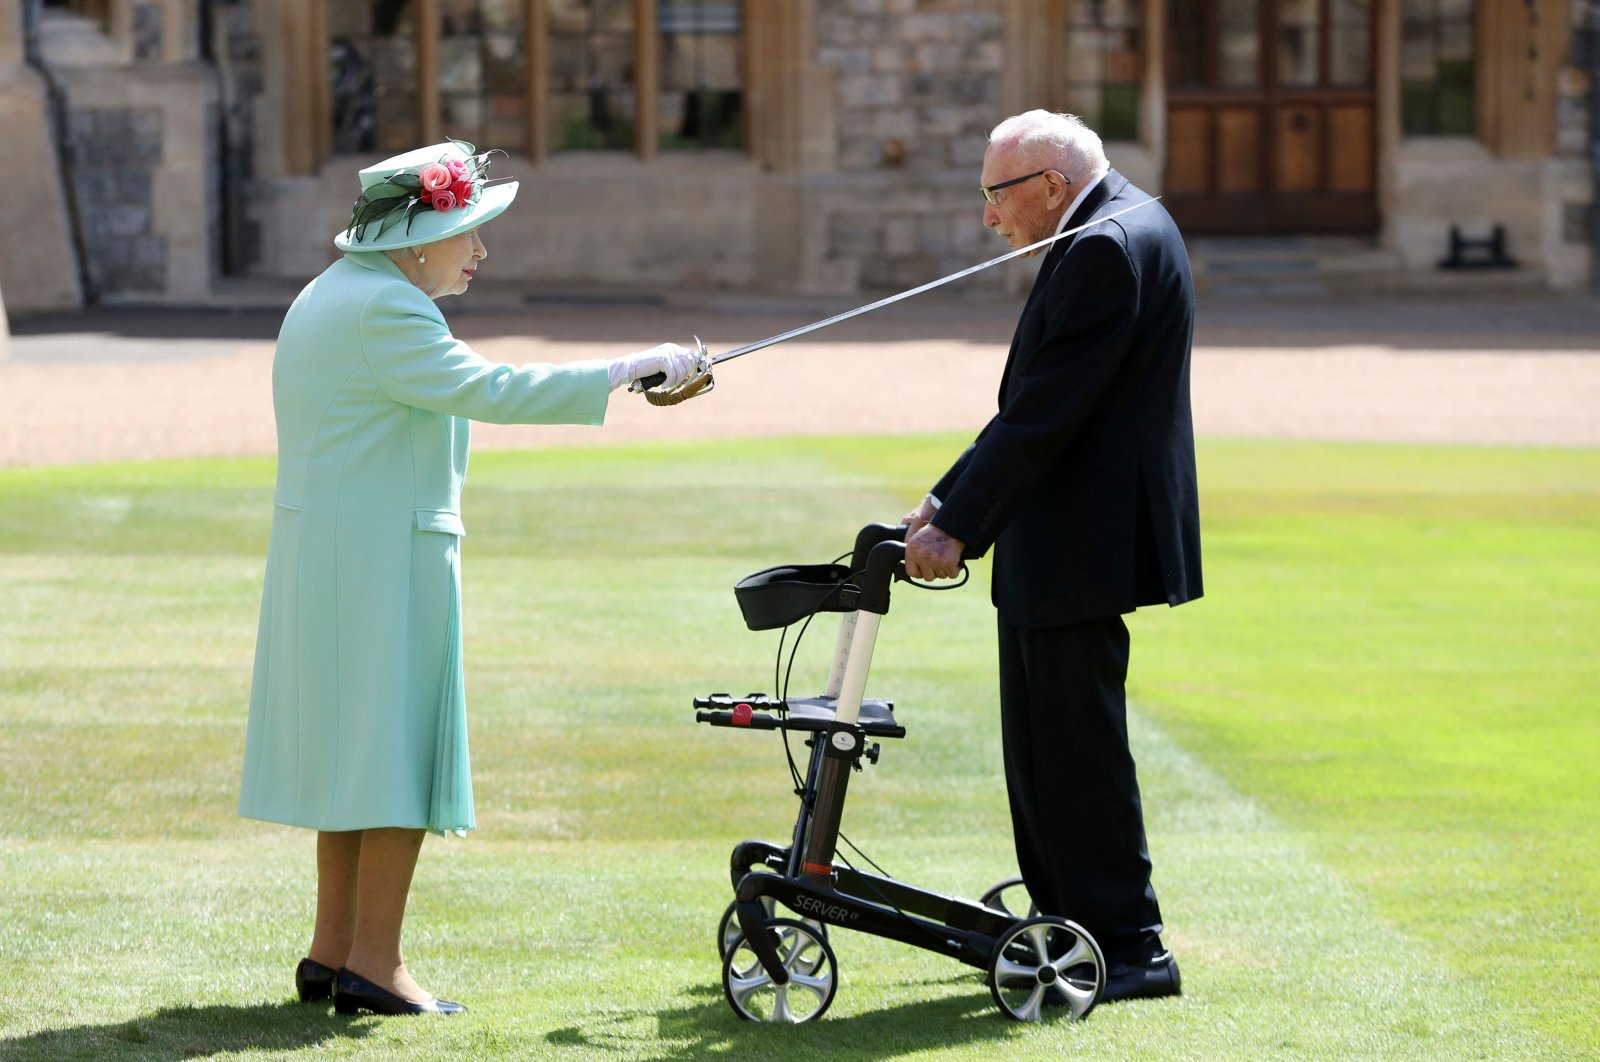 Captain Sir Thomas Moore receives his knighthood from Britain's Queen Elizabeth, during a ceremony at Windsor Castle in Windsor, England, July 17, 2020. (AP Photo)